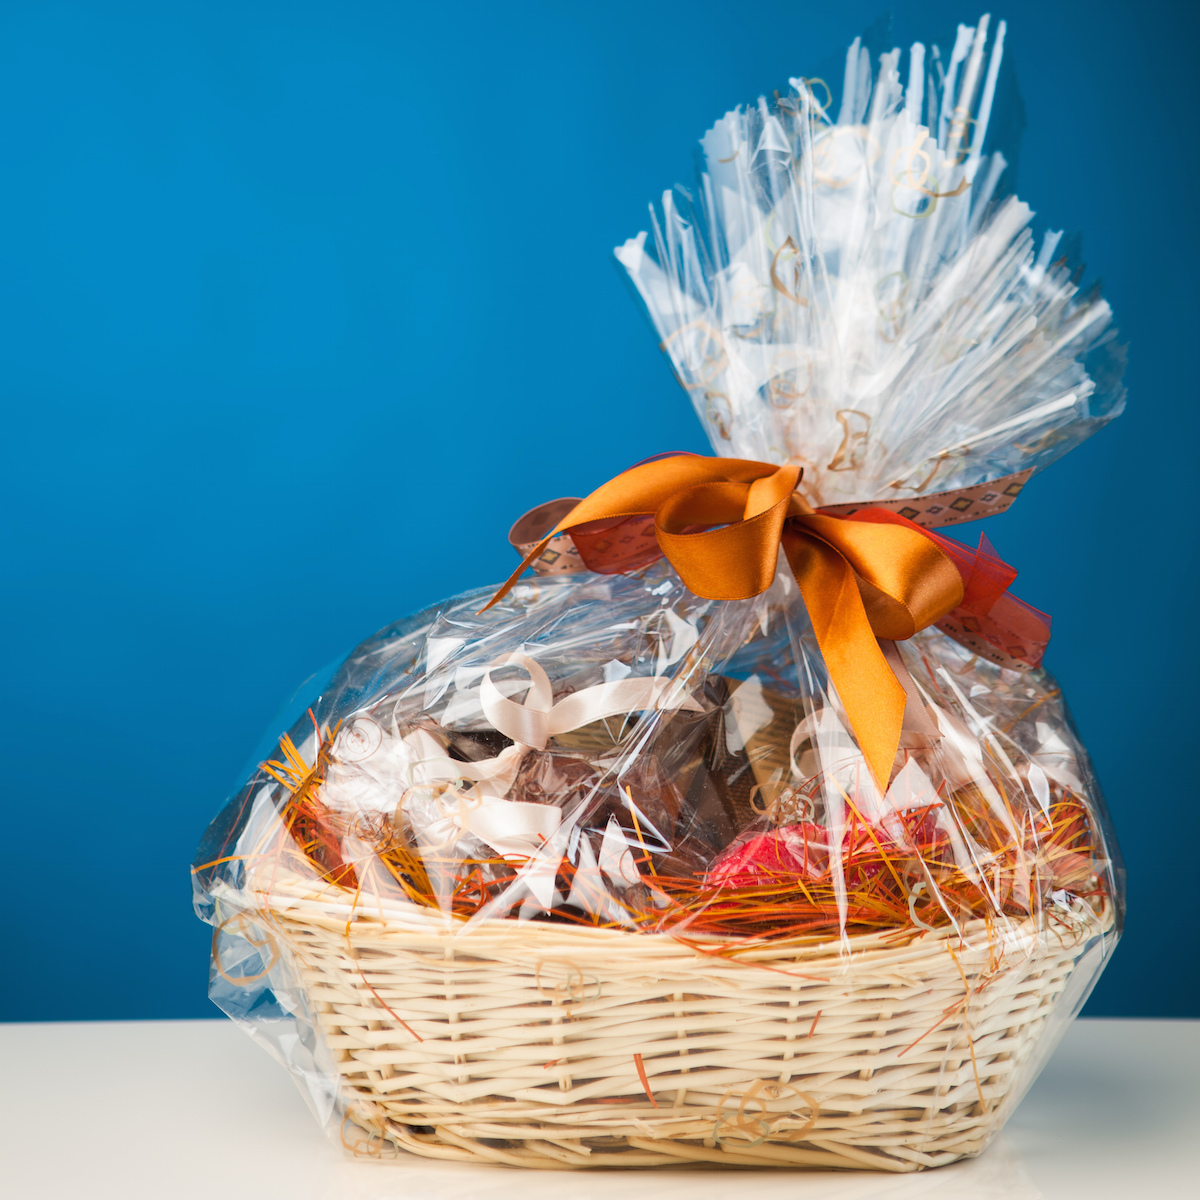 Wedding Guest Gift Baskets: Out Of Town Guest Gift Bag Ideas For Weddings